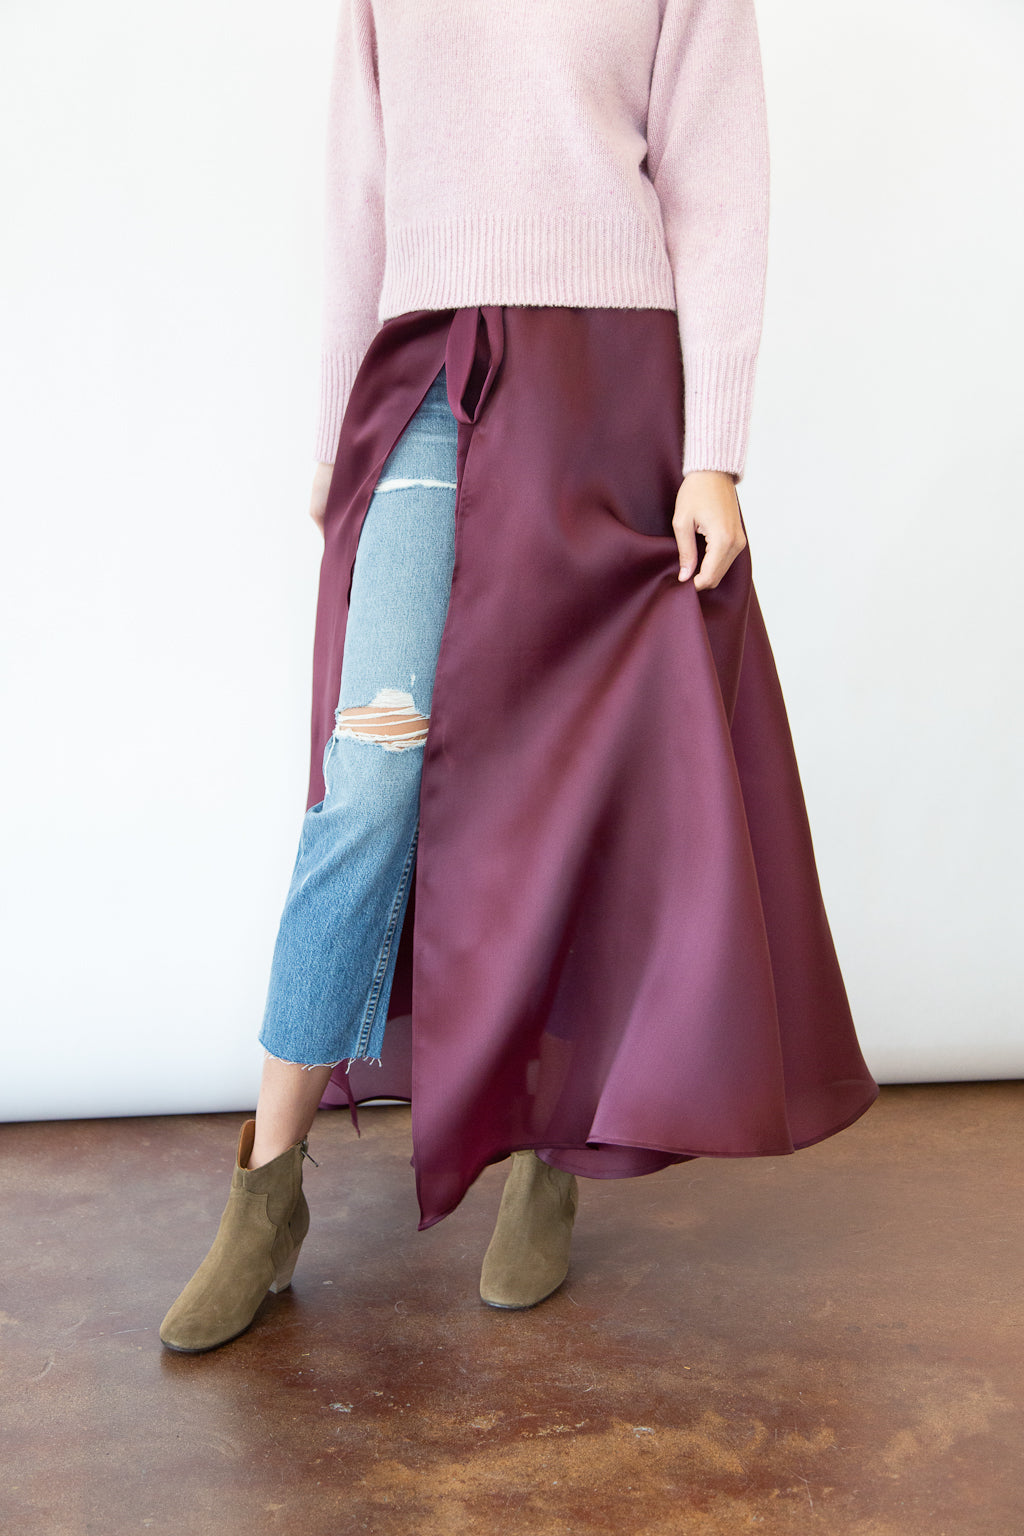 ELIZABETH Sofia Wrap Skirt - Shop Tula